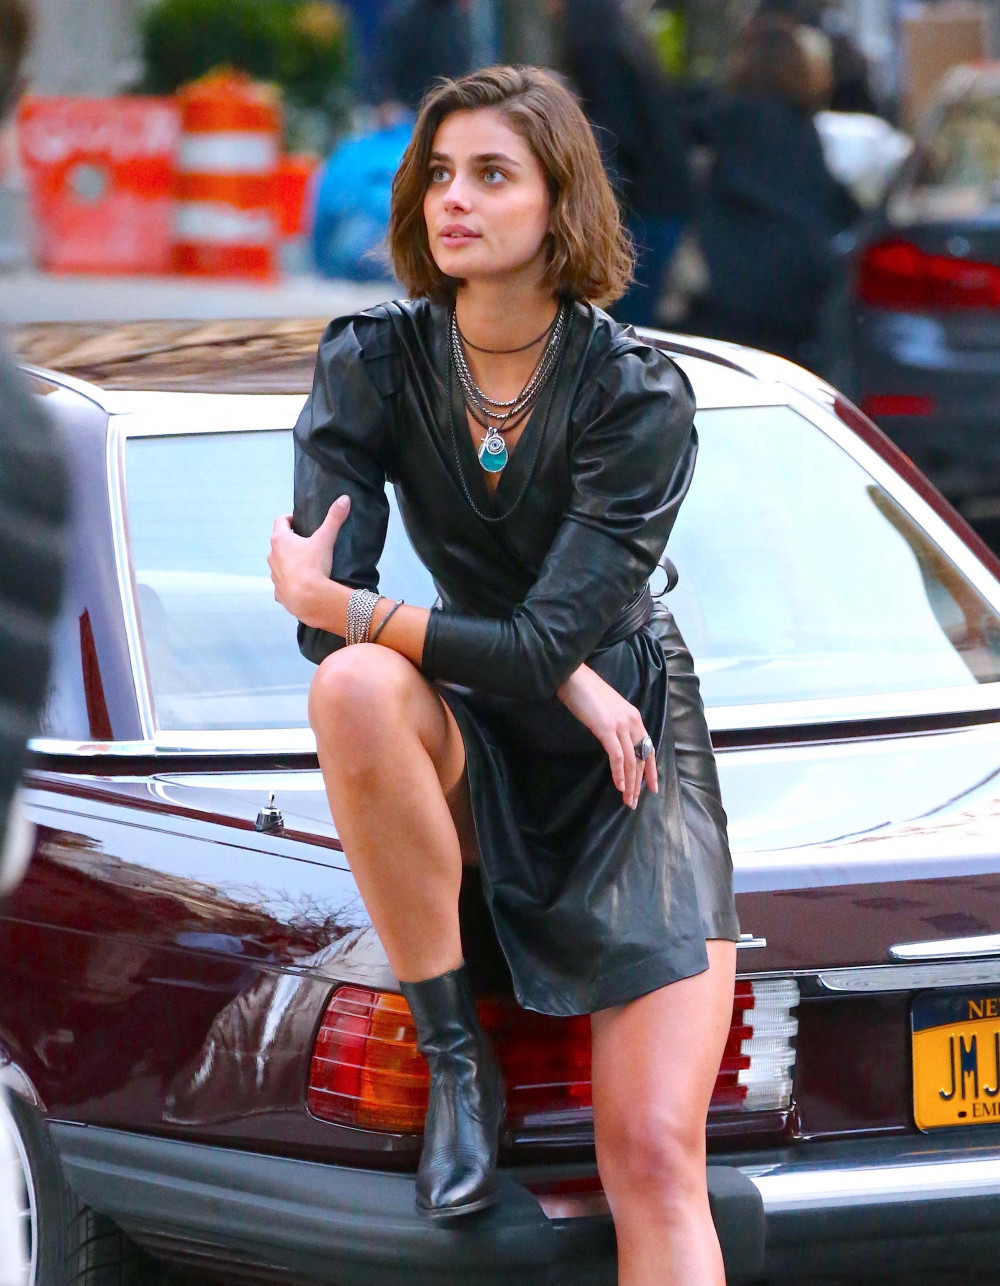 Taylor Marie Hill doing a photoshoot for the jewelery brand David Yurman in Tribeca, New York City